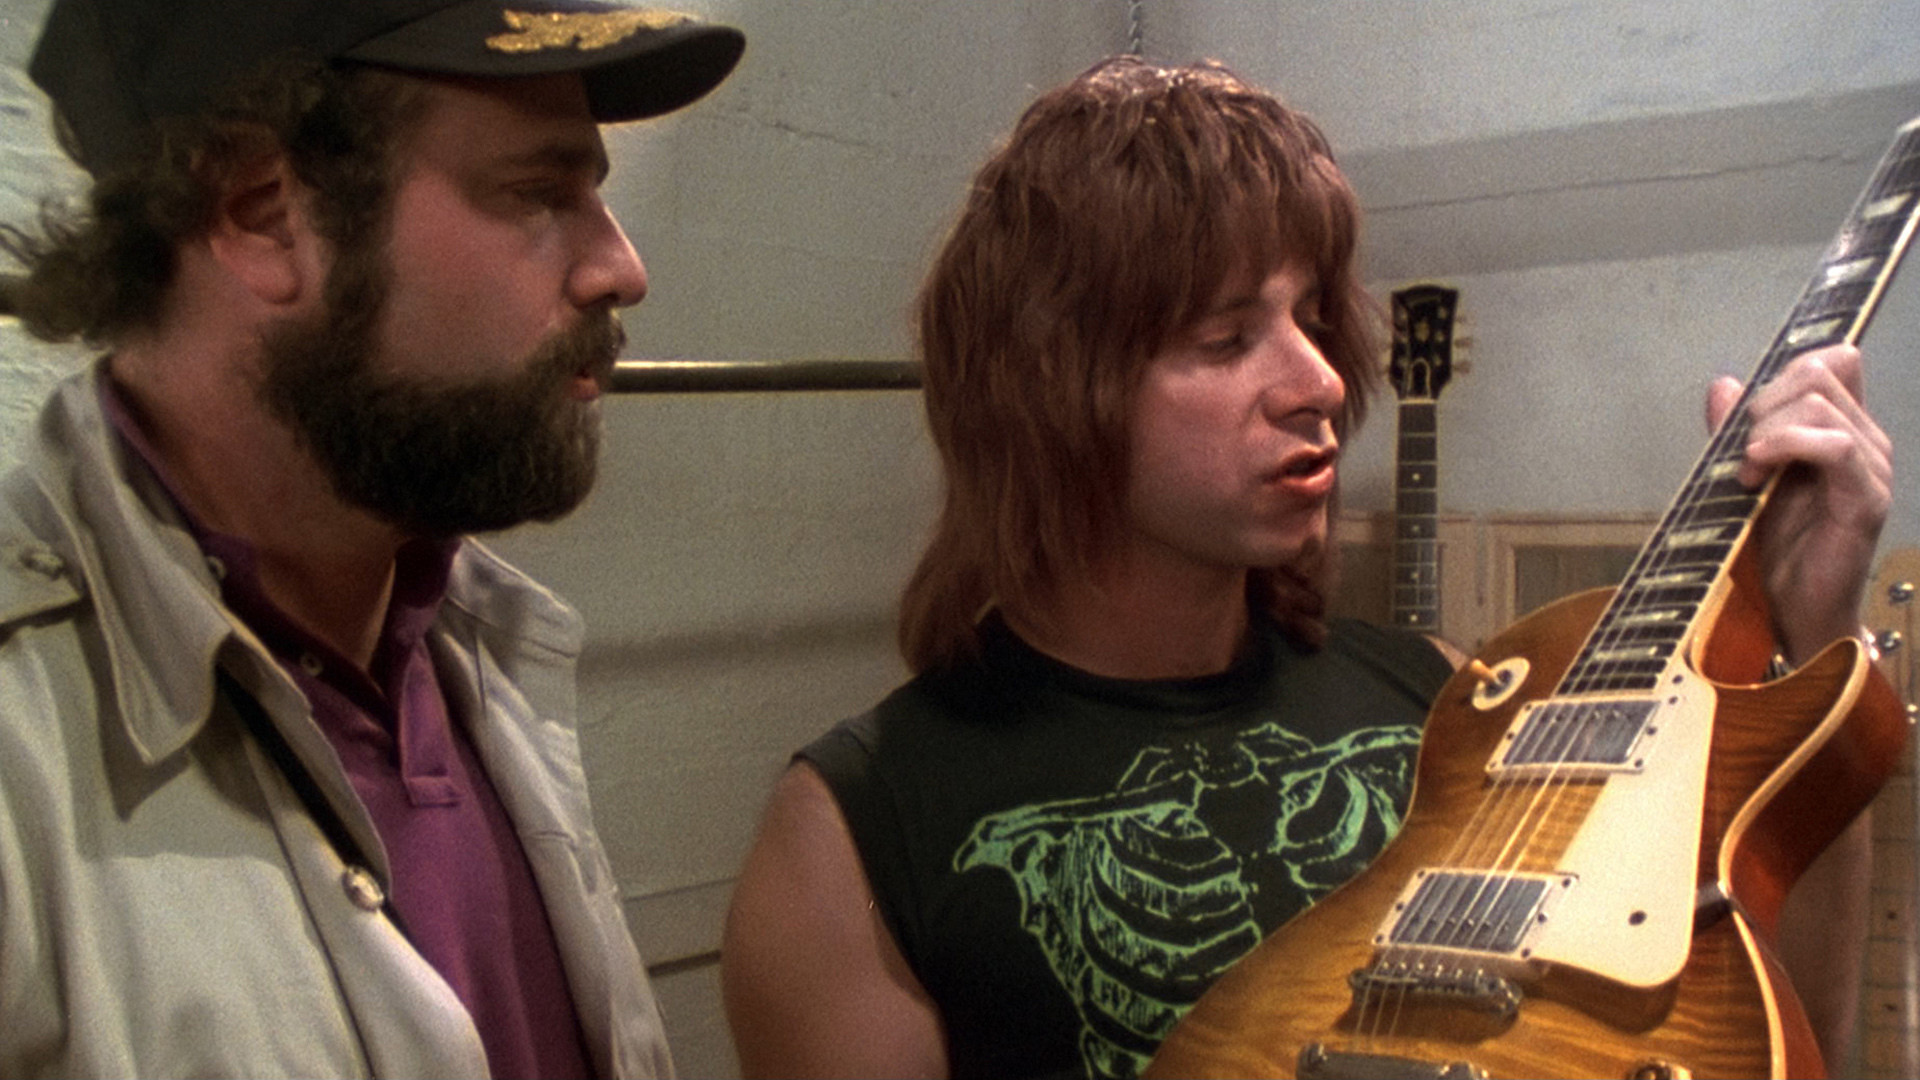 This Is Spinal Tap (1984) | FilmFed - Movies, Ratings ...